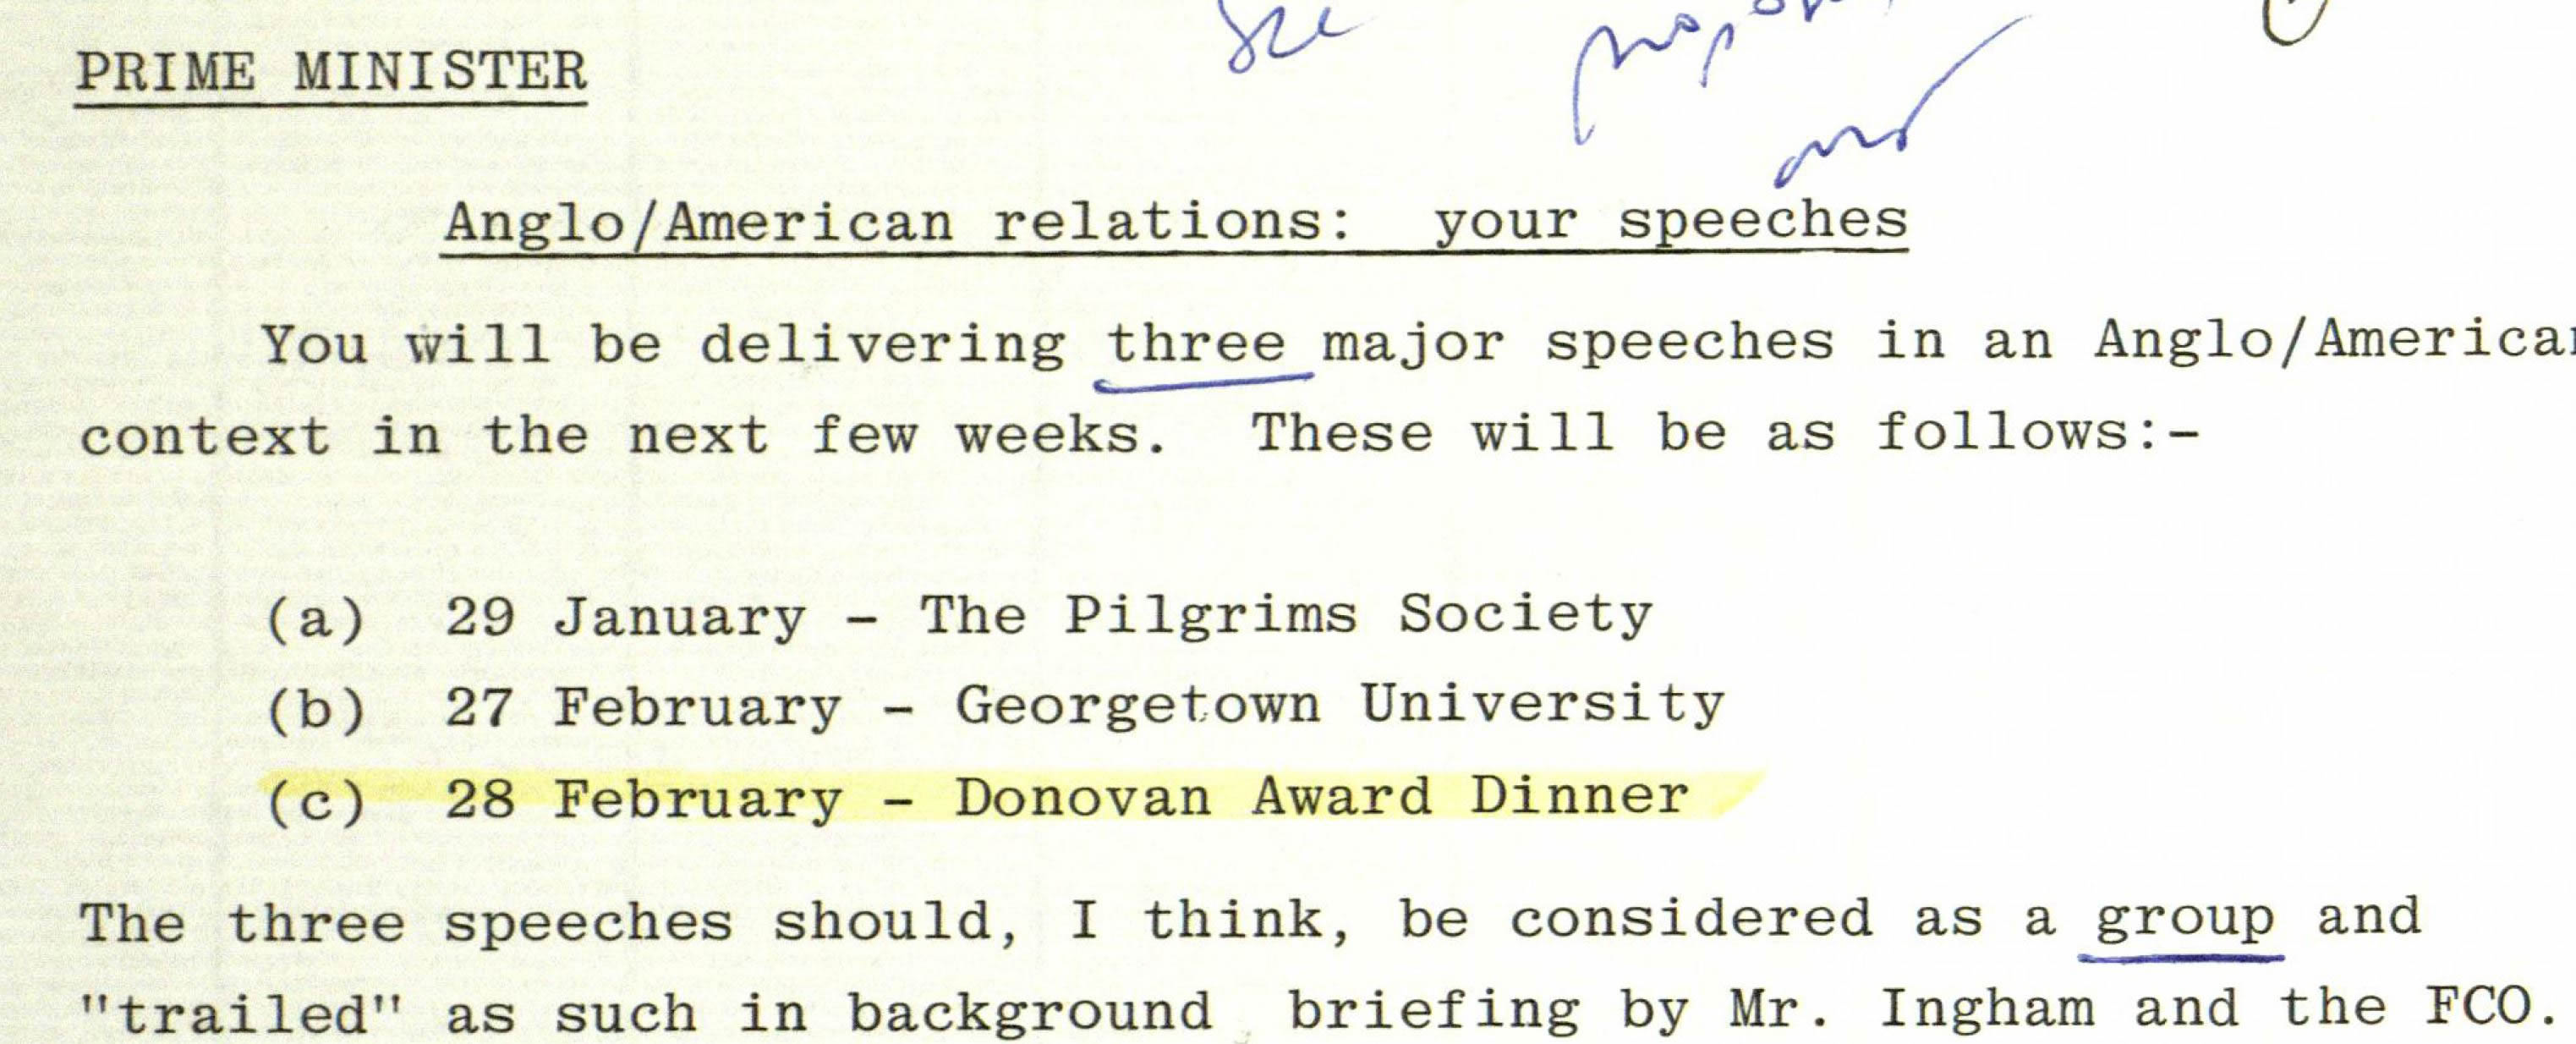 Francis Richards, Foreign and Commonwealth Office (FCO). (Jan. 08, 1981). Prime Minister Margaret Thatcher's Visit to the United States: Georgetown University, U.S. Pilgrims Society, including Donovan Award. 10 Downing Street (UK).